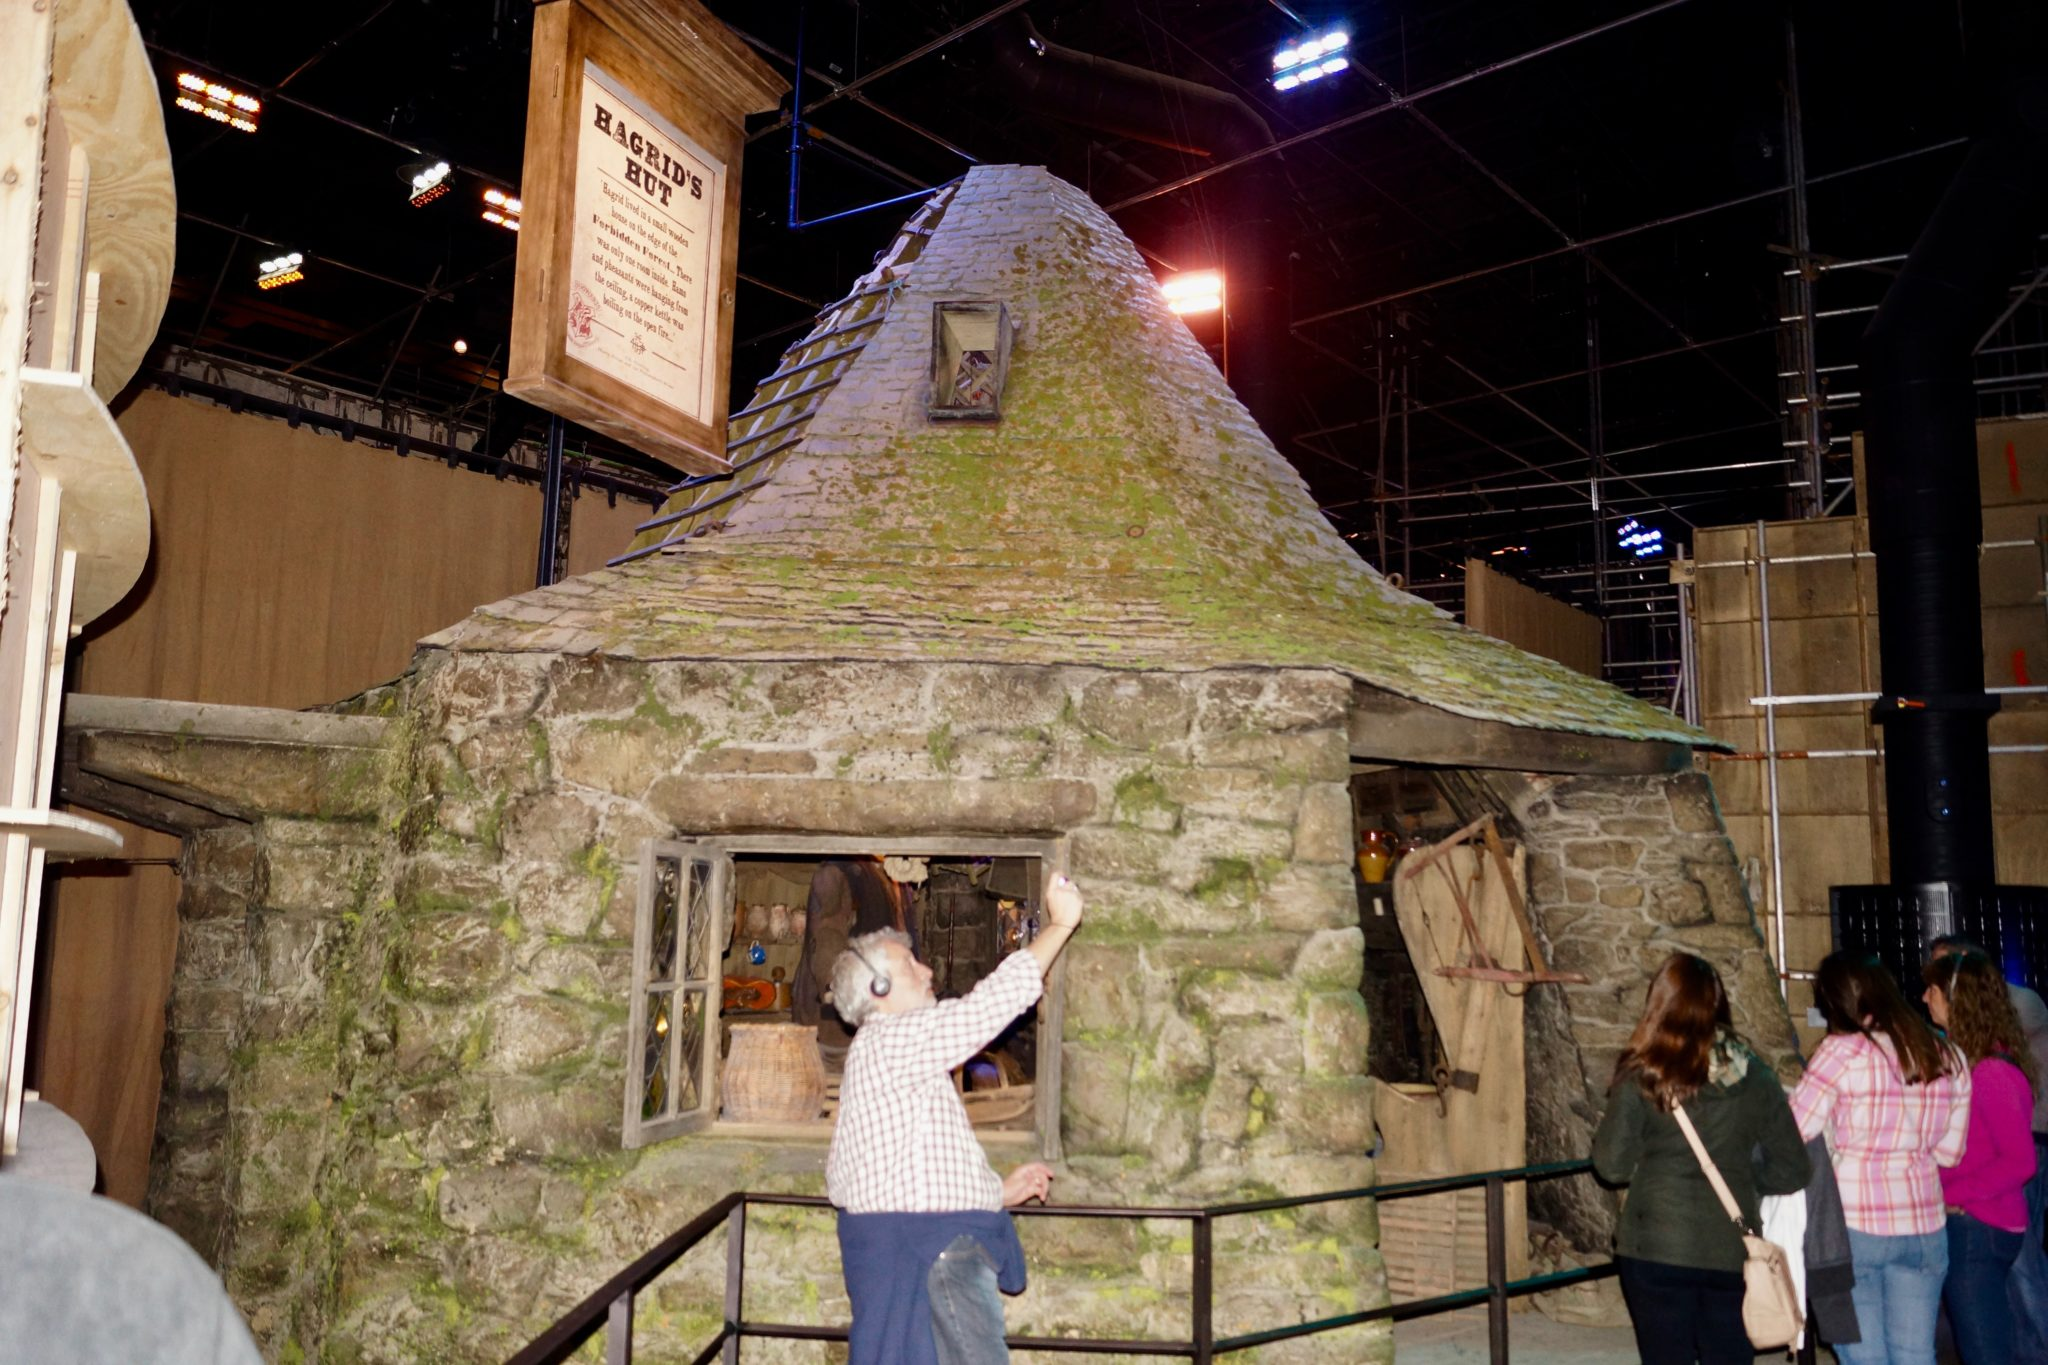 Hagrid's Hut from Harry Potter